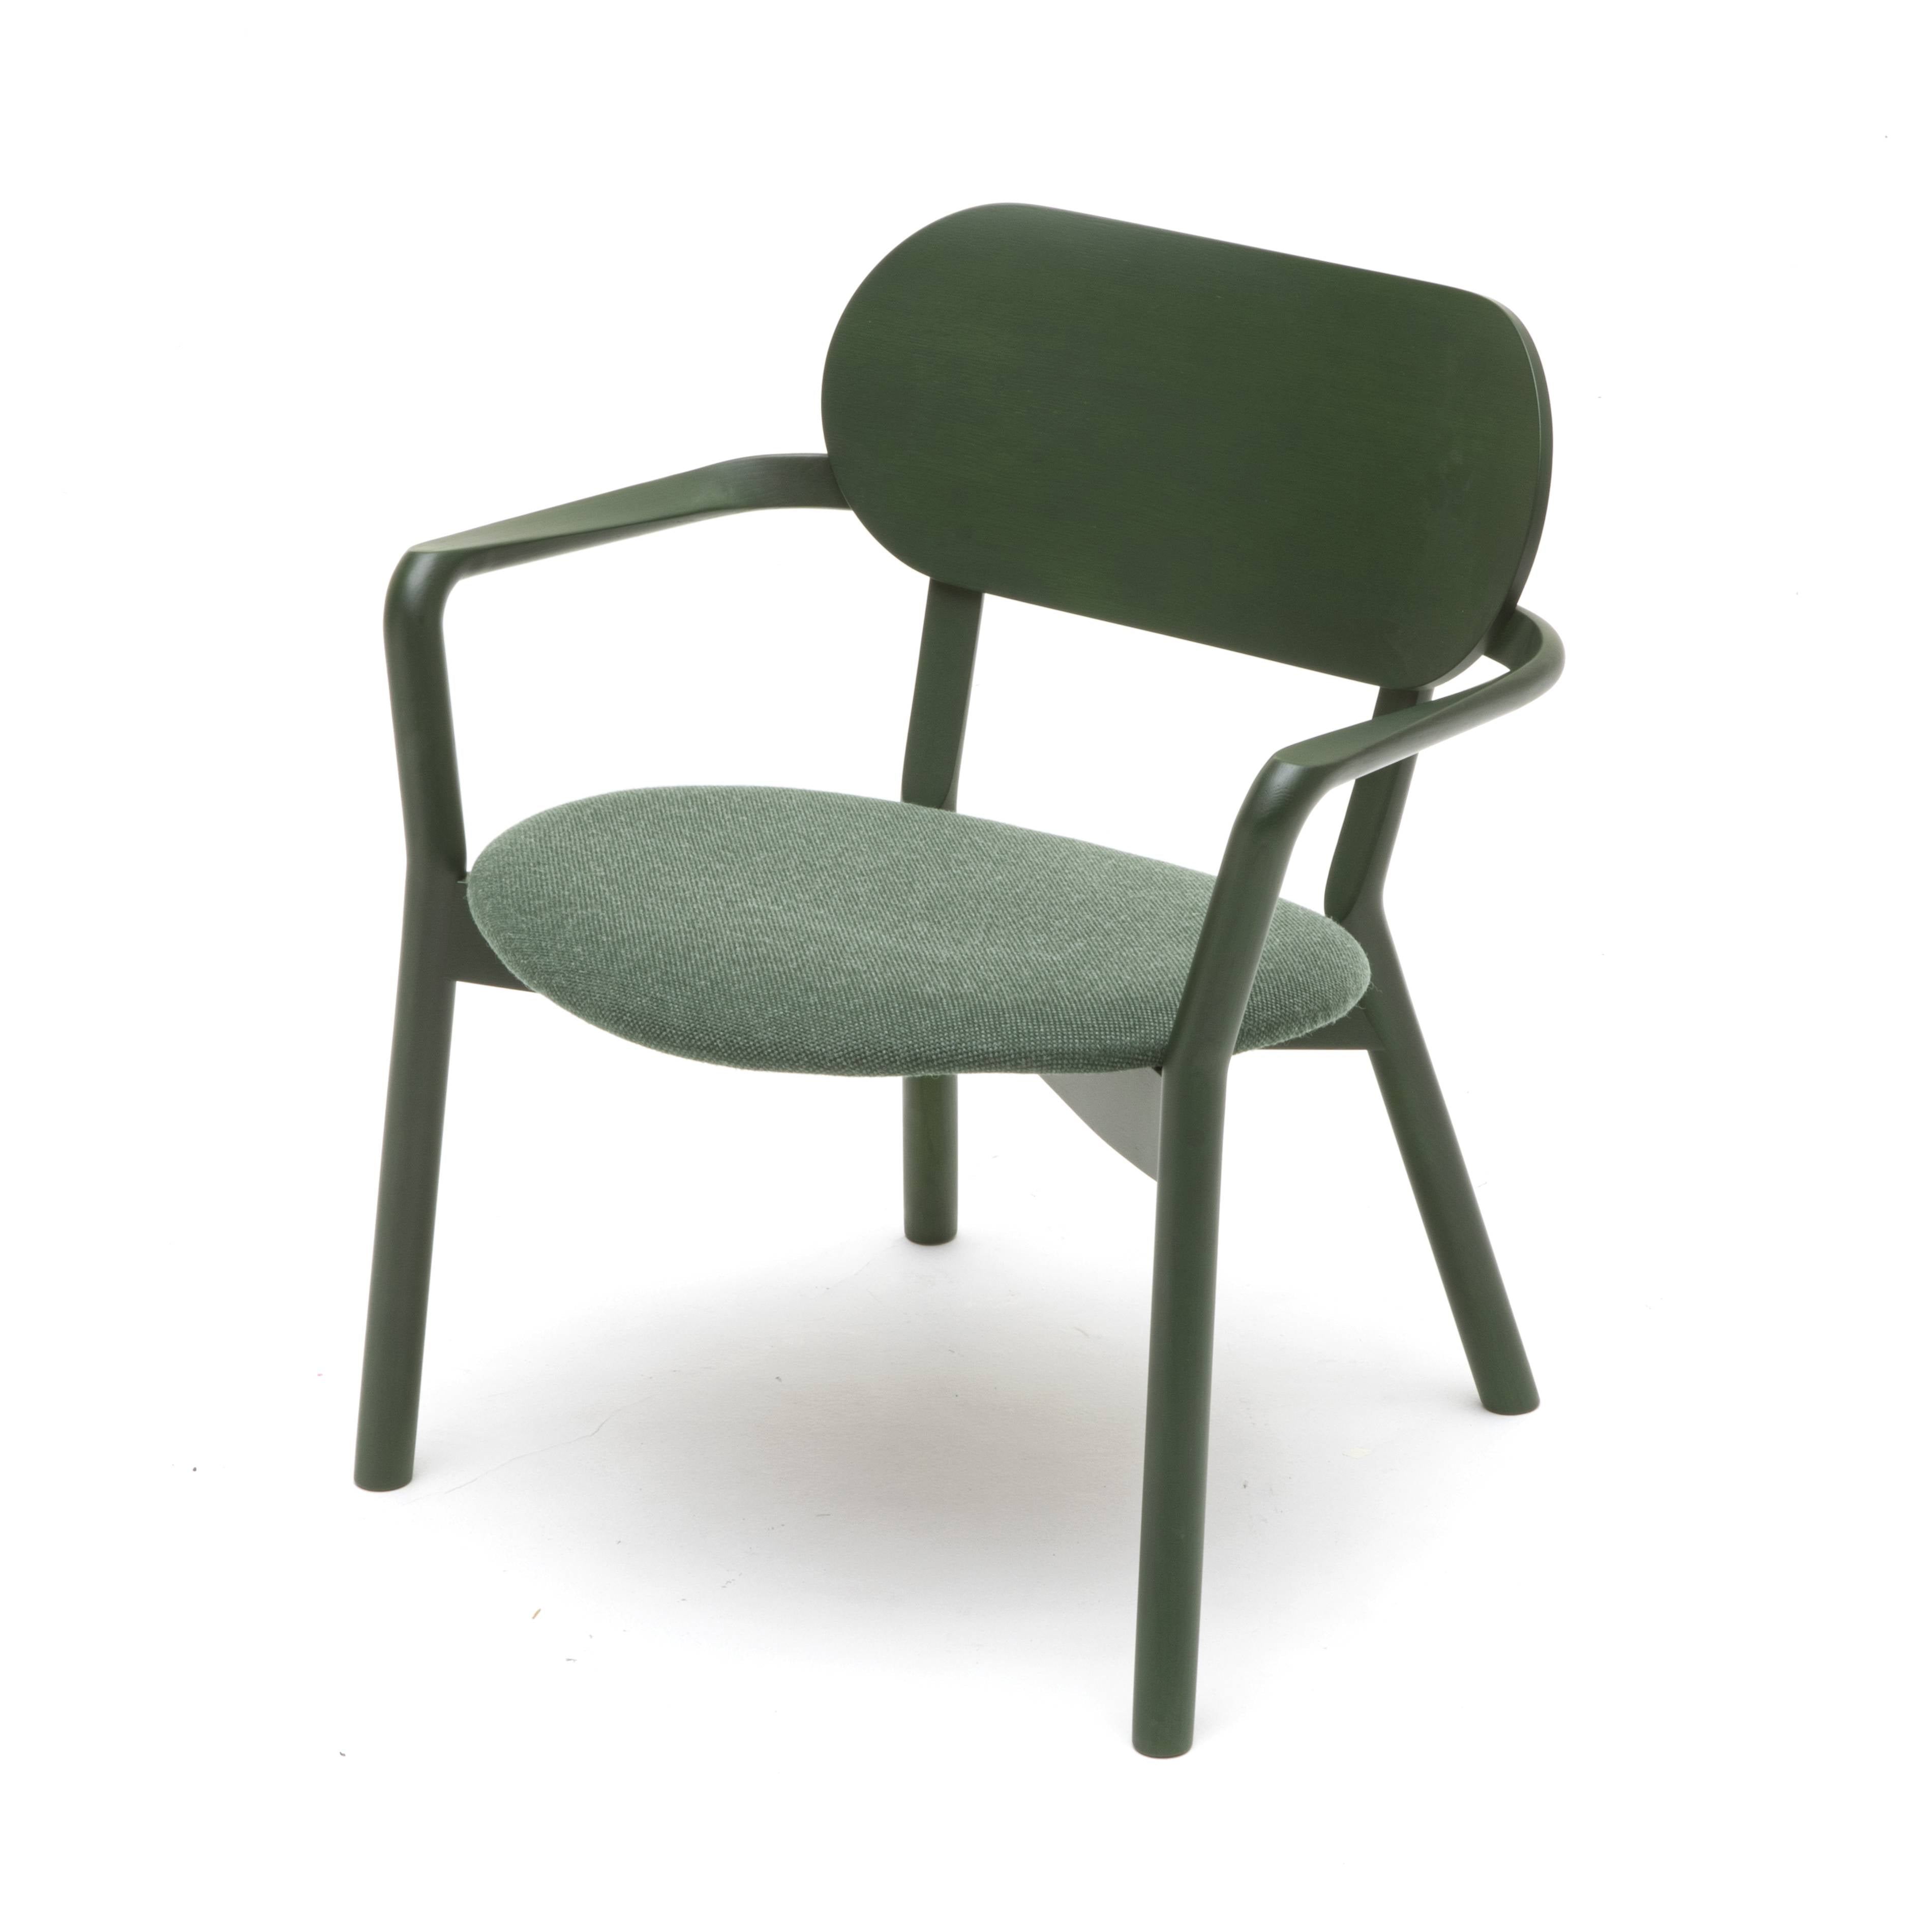 Castor Low Chair: Moss Green + With Pad